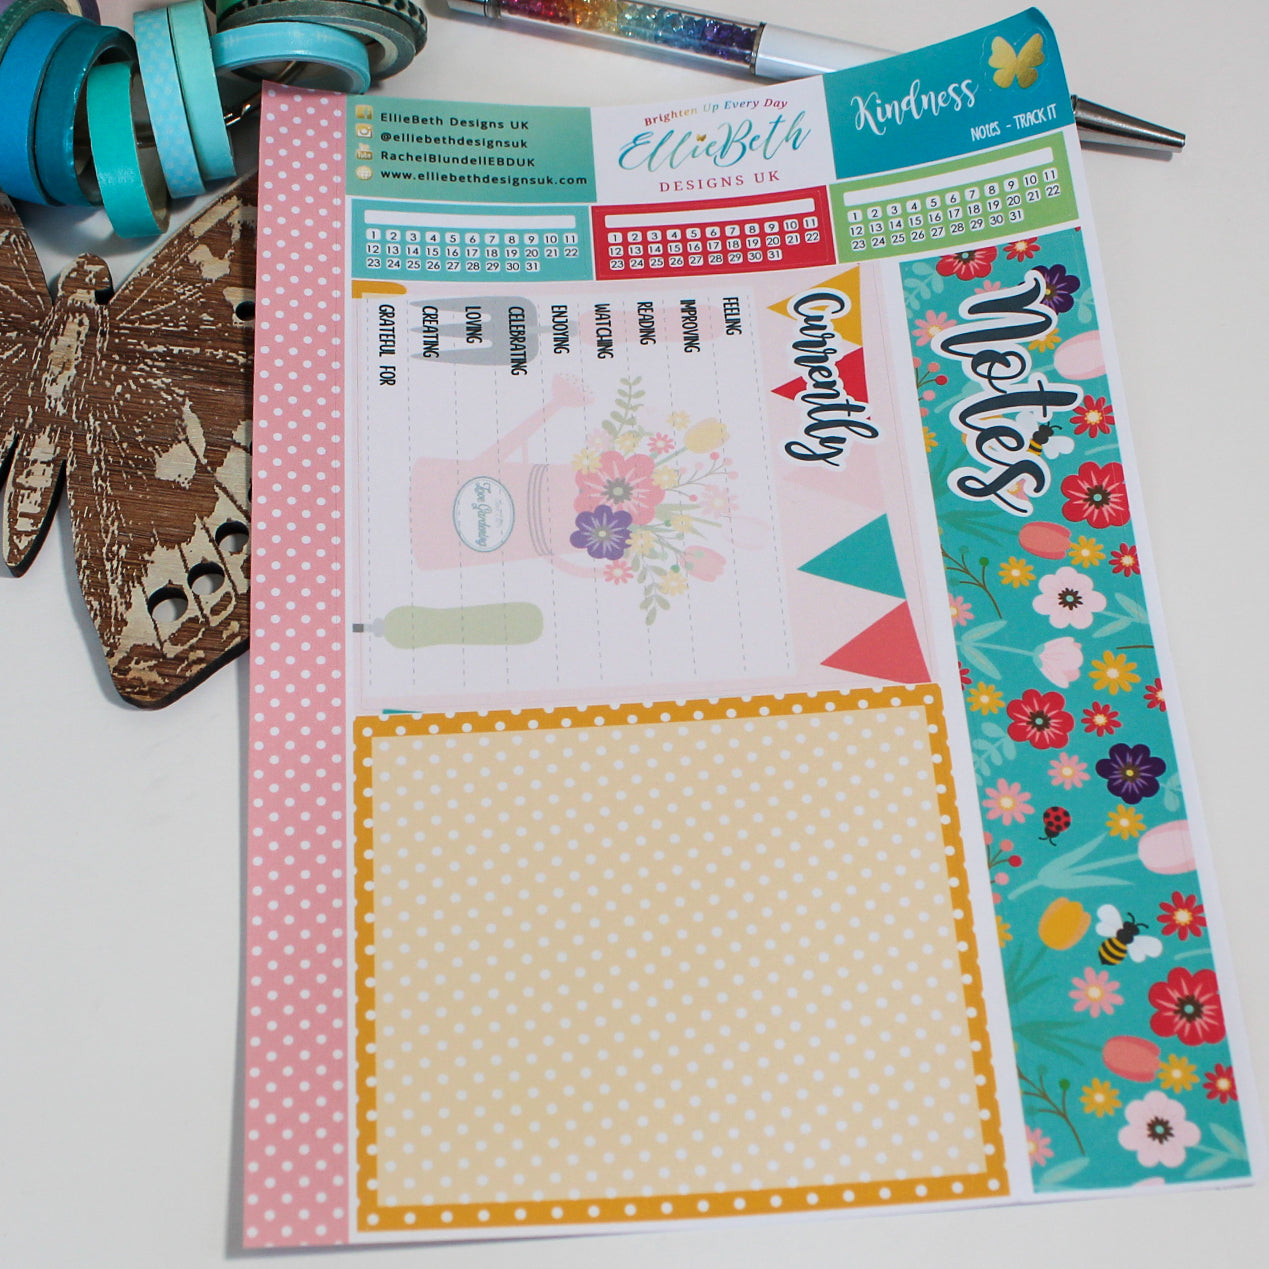 'Kindness' - Notes 'Track It' - A5 binder ready planner stickers